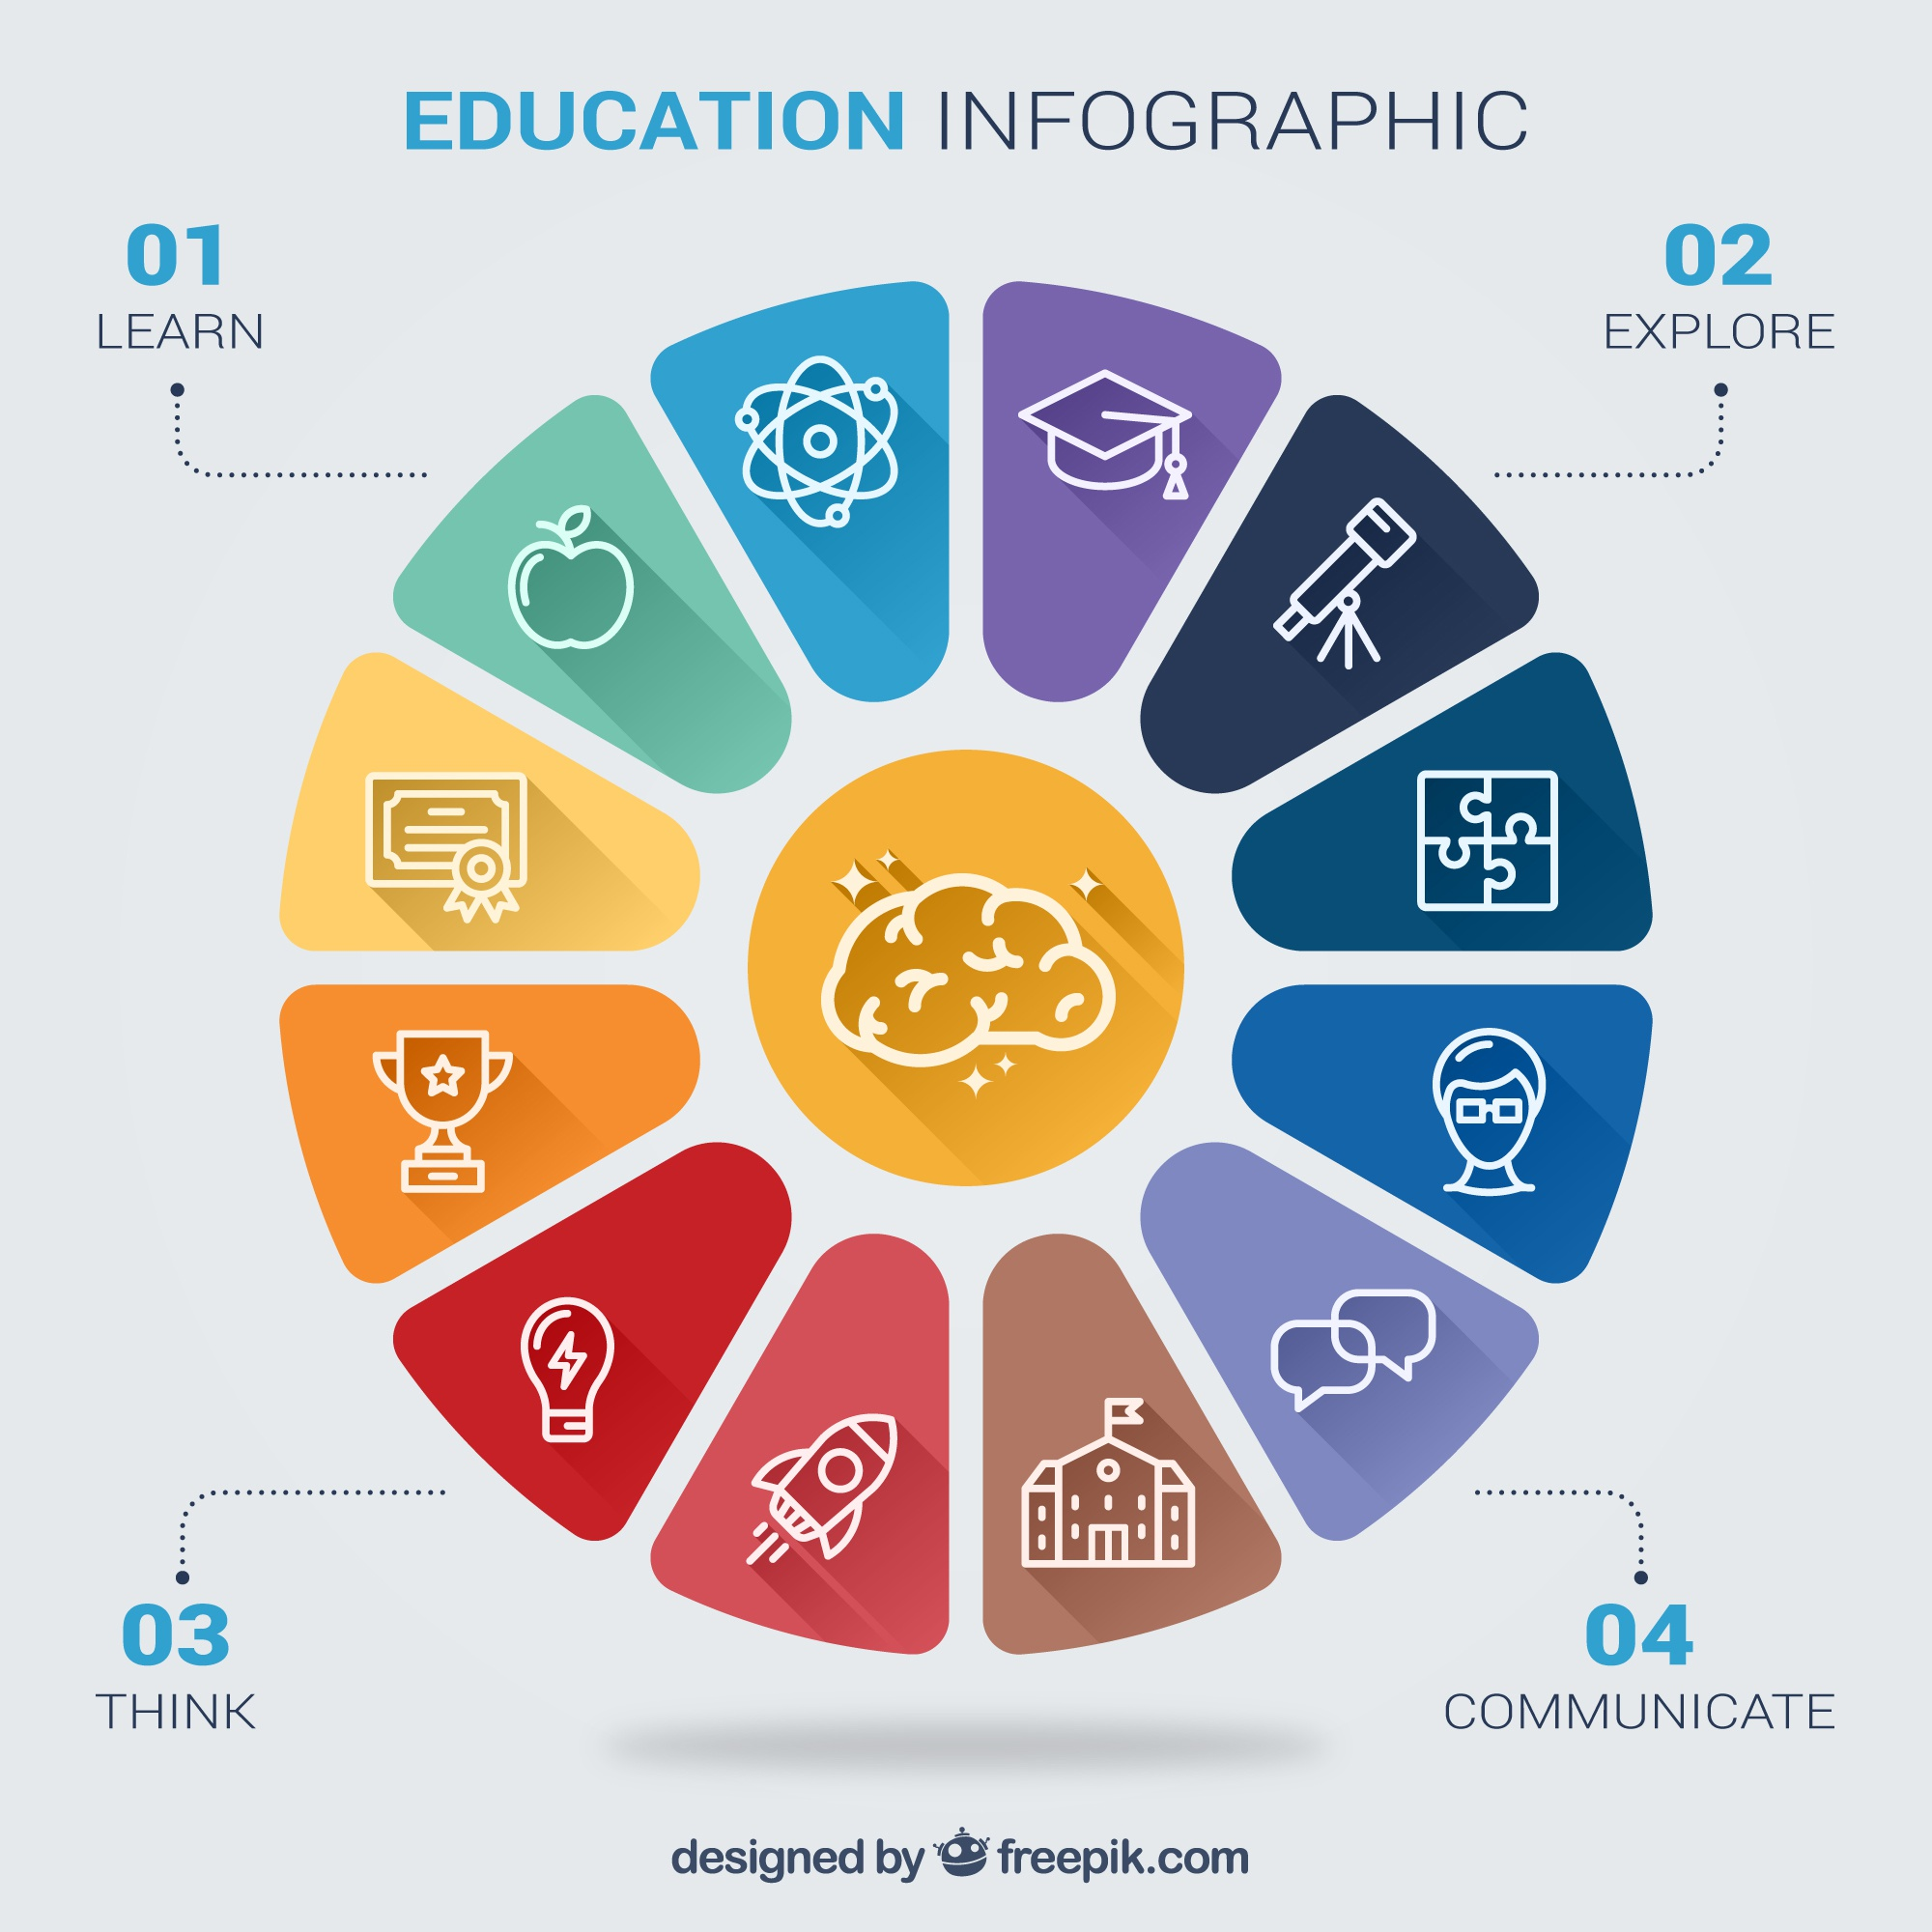 Educational infographic about school skills